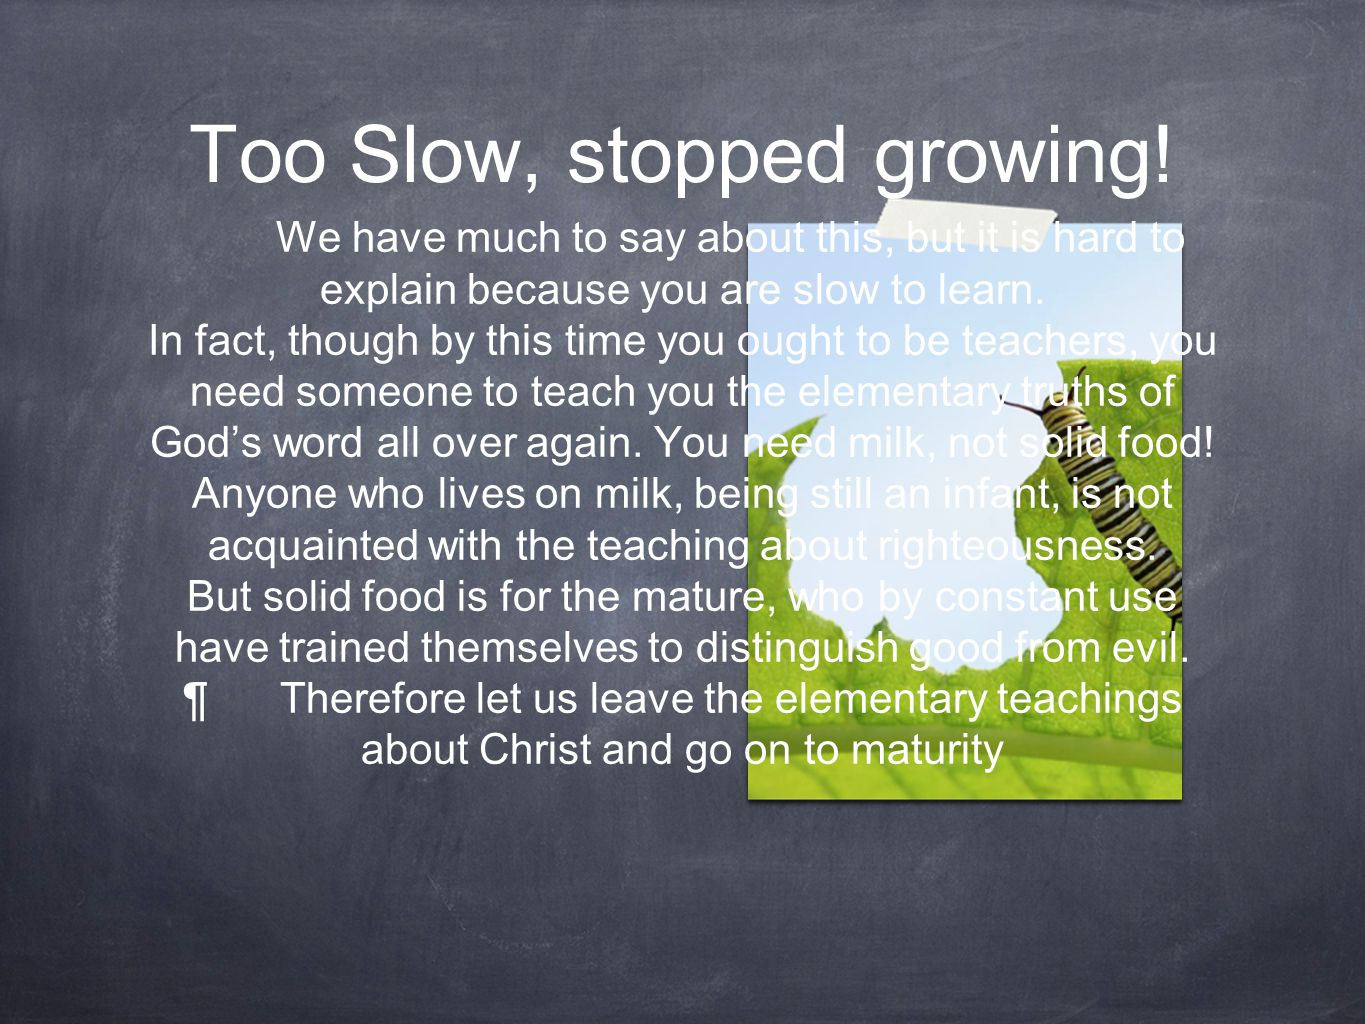 Too Slow, stopped growing.